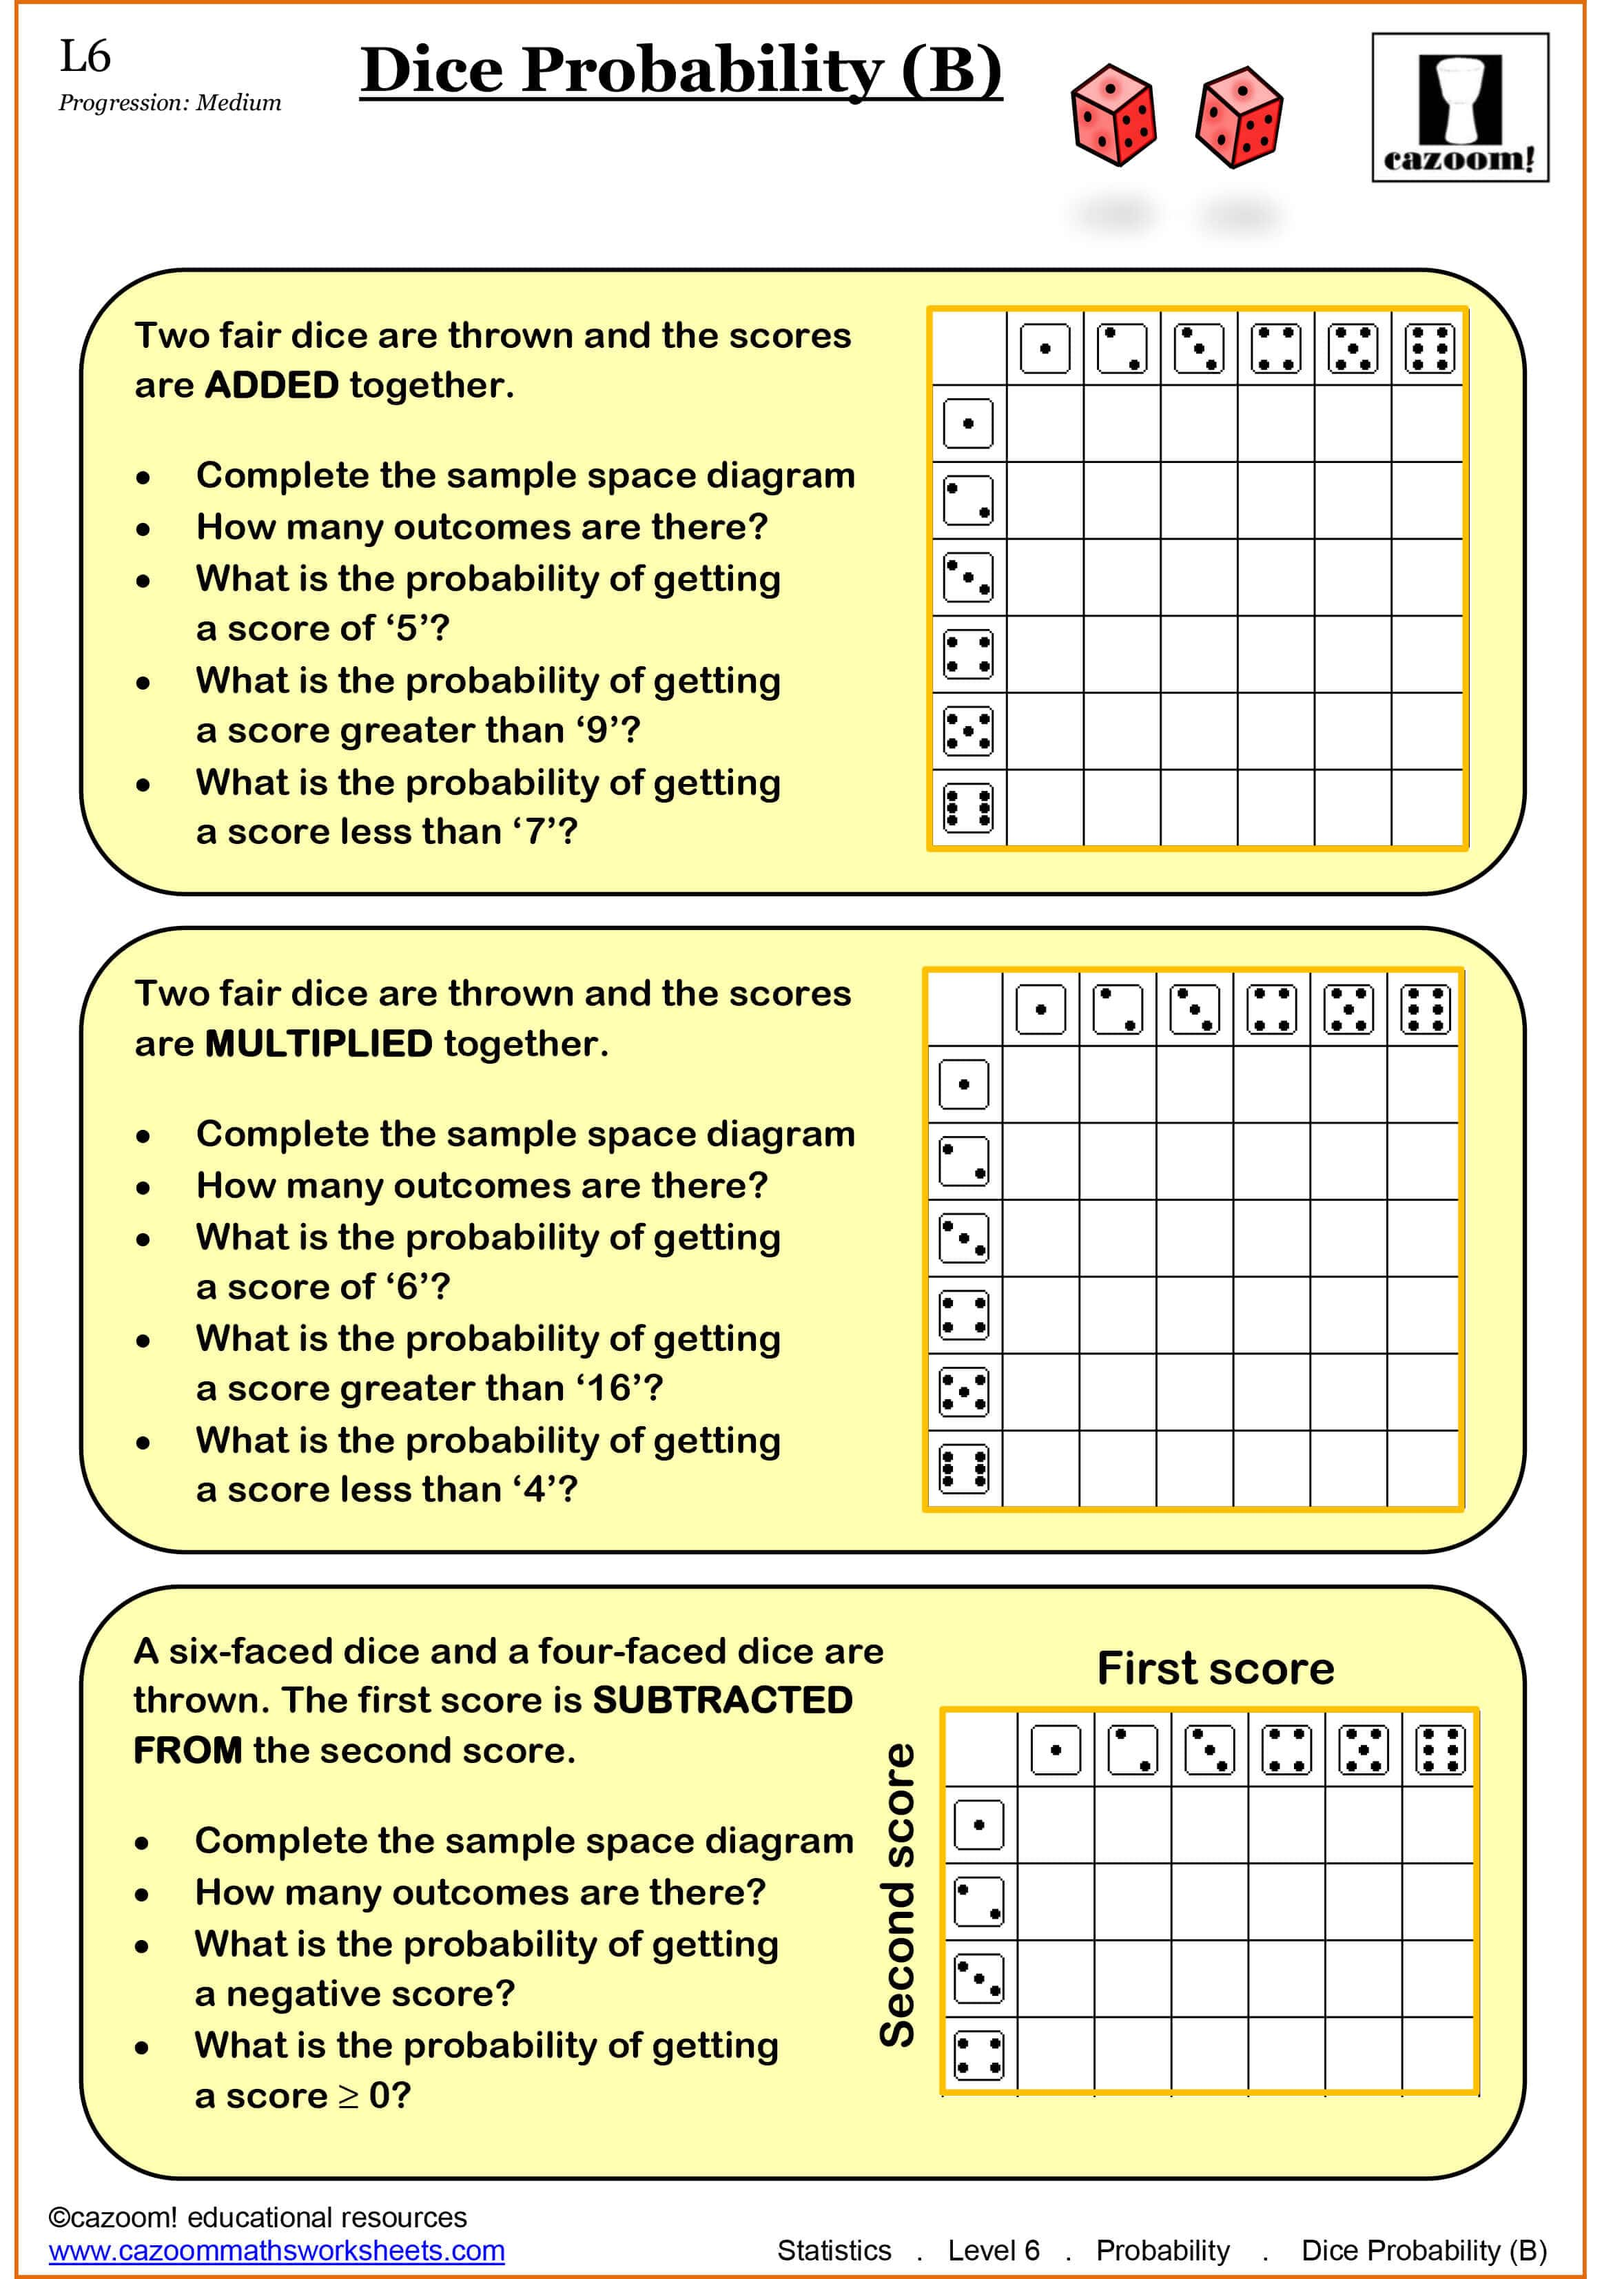 Year Maths Worksheets Printable Free Alge Revision Worksheet 8 further  together with Math Worksheets Maths Revision For Kids Sums Cl 8 Ncert moreover  moreover Kindergarten Maths Worksheets   KS3   KS4 Printable PDF Worksheets moreover revision worksheets furthermore 4  picture  year 8 revision maths worksheets  antihrap moreover Kindergarten Wonderful Year 8 Revision Worksheets Pictures further Year 8 Maths Worksheets   Cazoom Maths Worksheets moreover Yr 8 Maths Worksheets   Free Printables Worksheet in addition MathSphere Free S le Maths Worksheets moreover Year 8 Maths Worksheets   Cazoom Maths Worksheets also  also Gcse Maths Worksheets And Answers Pdf Questions Foundation Revision in addition  furthermore Years Revision Worksheets Impressive Year 8 Maths Math Uk Exercises. on year 8 revision maths worksheets